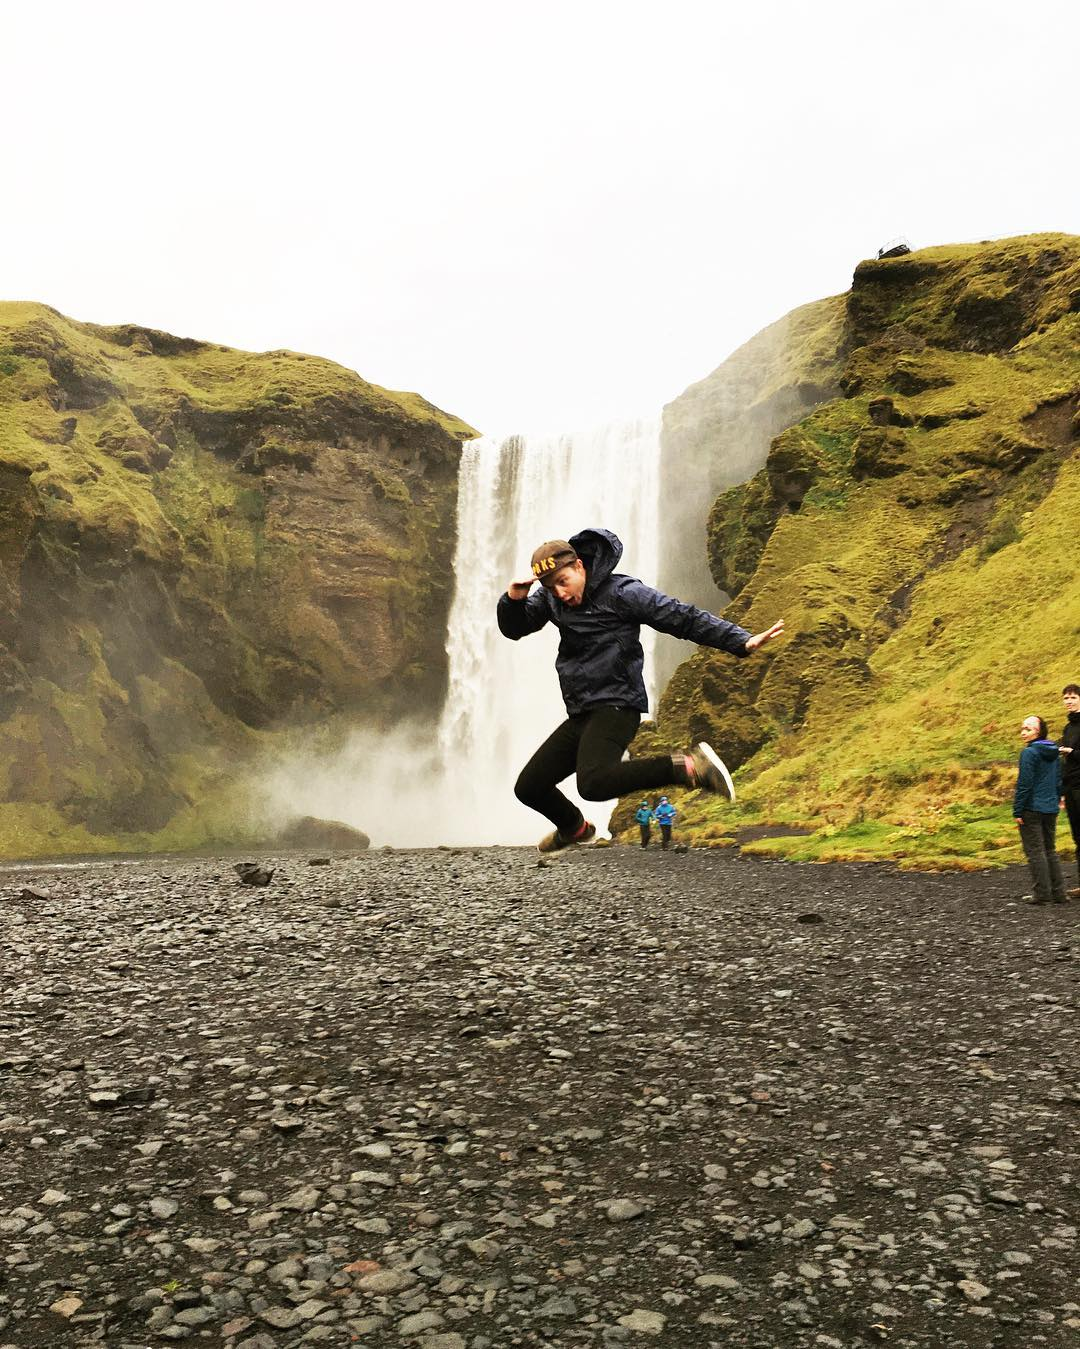 BIG SPLASH Whadda waterfall! #ParkChamp @micahheykoop showing off in our Shortcut Hat up in Iceland.